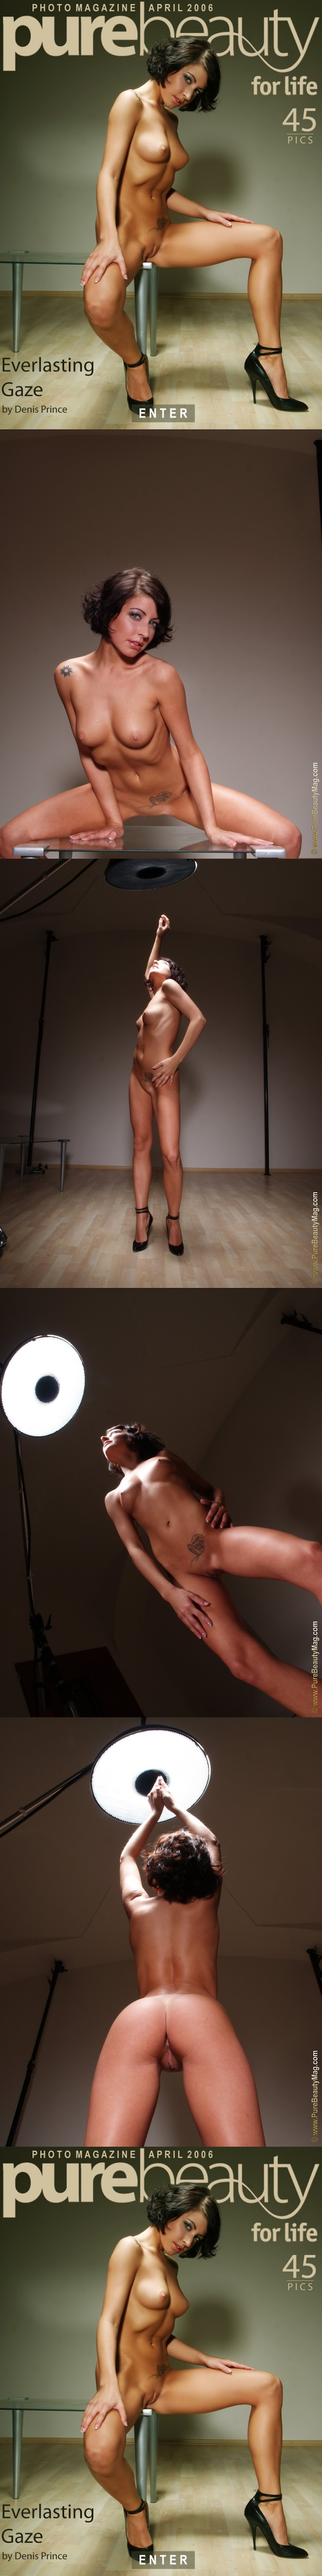 PureBeautyMag PBM  - 2006-04-03 - #s200958 - Nikol B - Take you there - 3600px